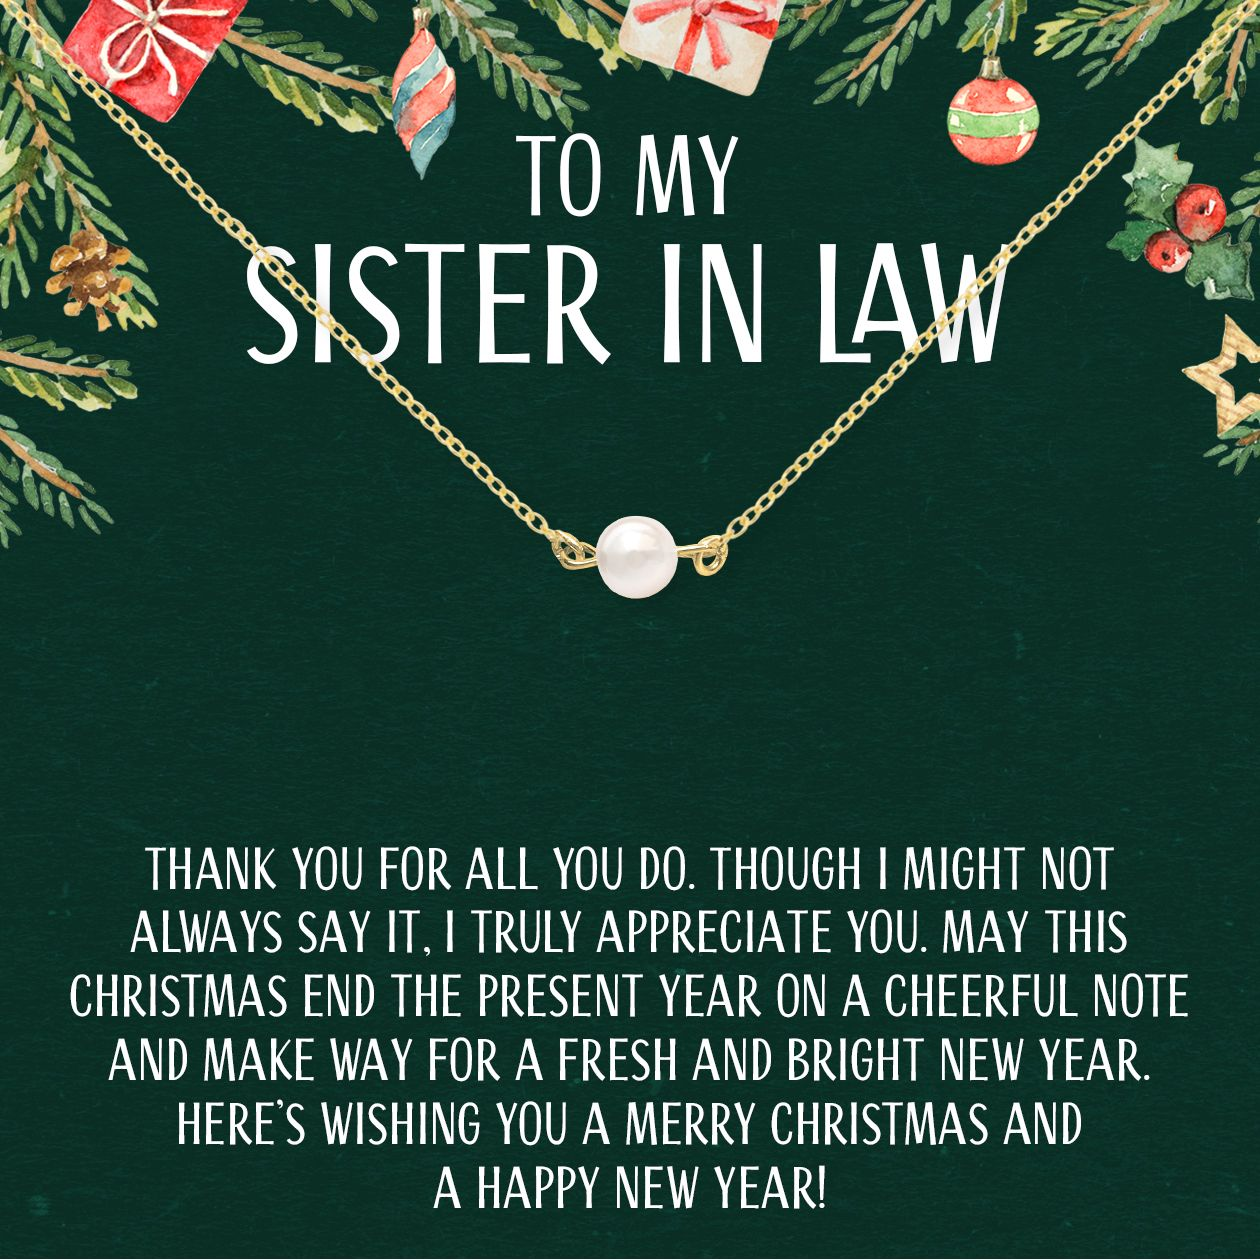 Christmas Gift For Sister In Law Pearl Necklace Christmas Gifts For Sister Sister In Law Gifts In Law Christmas Gifts